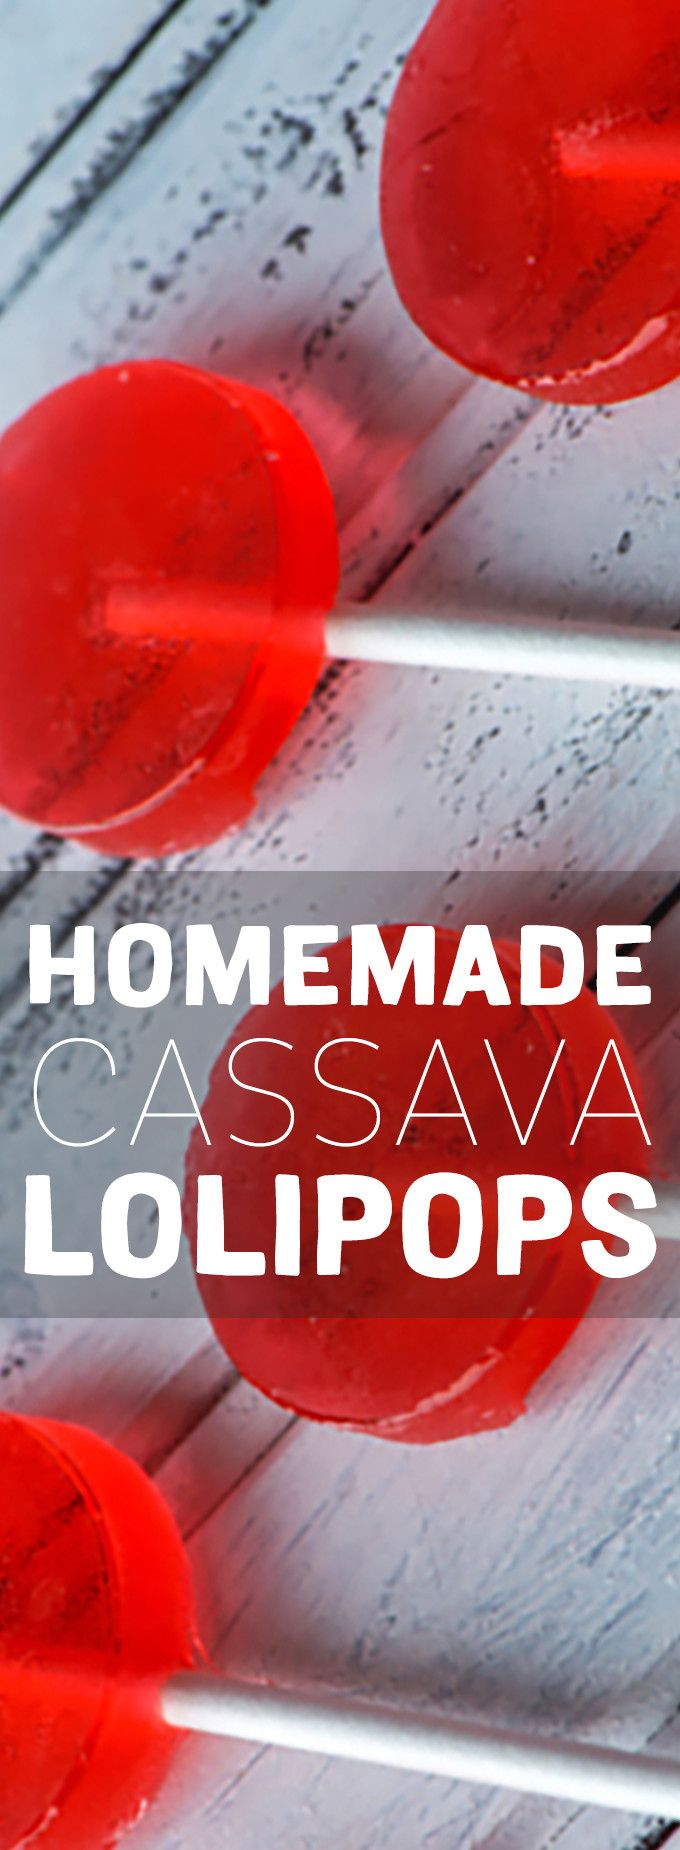 Health benefits of cassava - You Re Just Three Fool Proof Steps Away From Sweet Tasty Homemade Lollipops Made With Fructose Free Madhava Organic Cassava